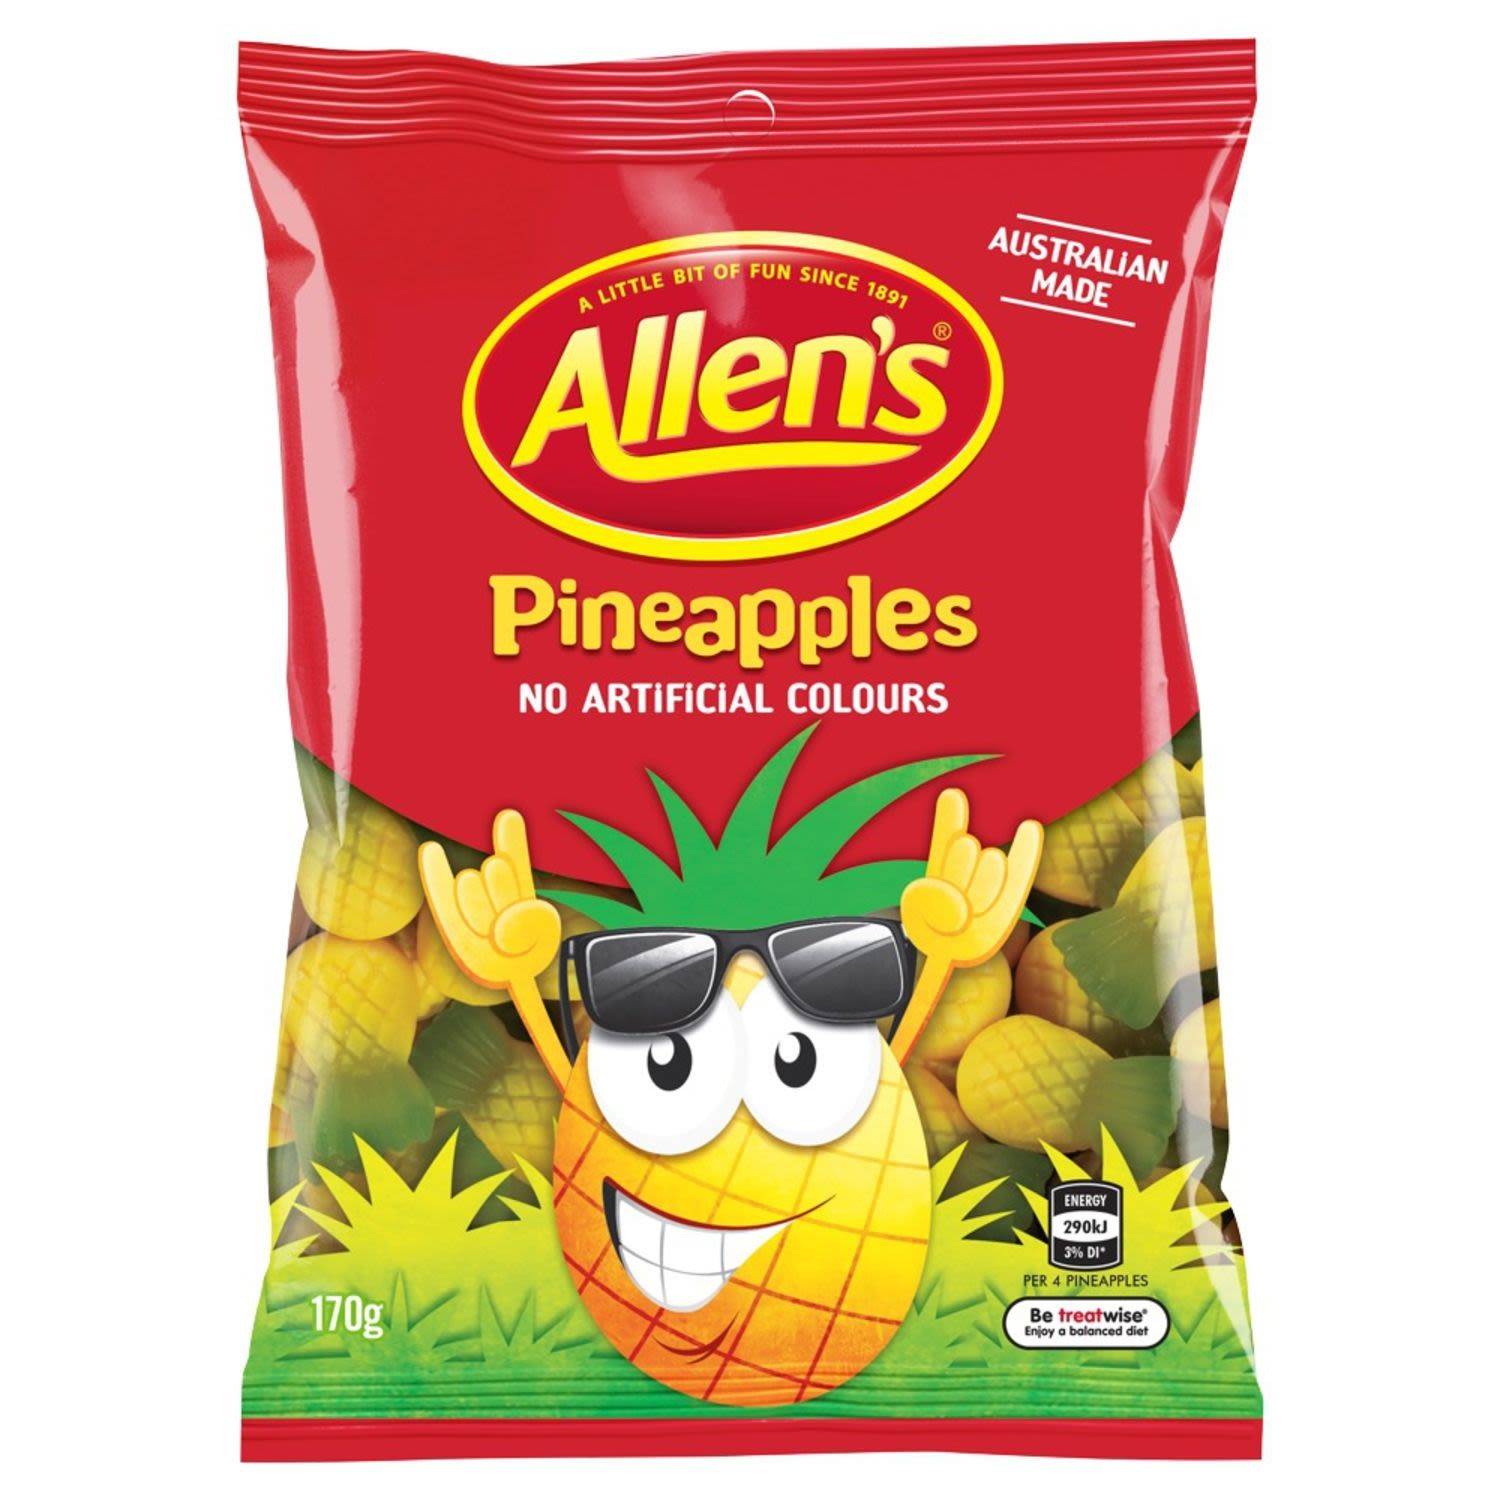 Allen's Pineapples are a juicy, bite sized treat for your taste buds. Catch these cool yellow and green pineapples before they party on out of town! Squish each deliciously soft pineapple flavoured jelly between your fingers, stretch it, bite the top off or just enjoy it in one yummy bite. 4 Pineapples = 1 Portion. Australian made and contains no artificial colours, so are great to share with family and friends. Contains Wheat. May contain Milk. Allen's makes smiles!